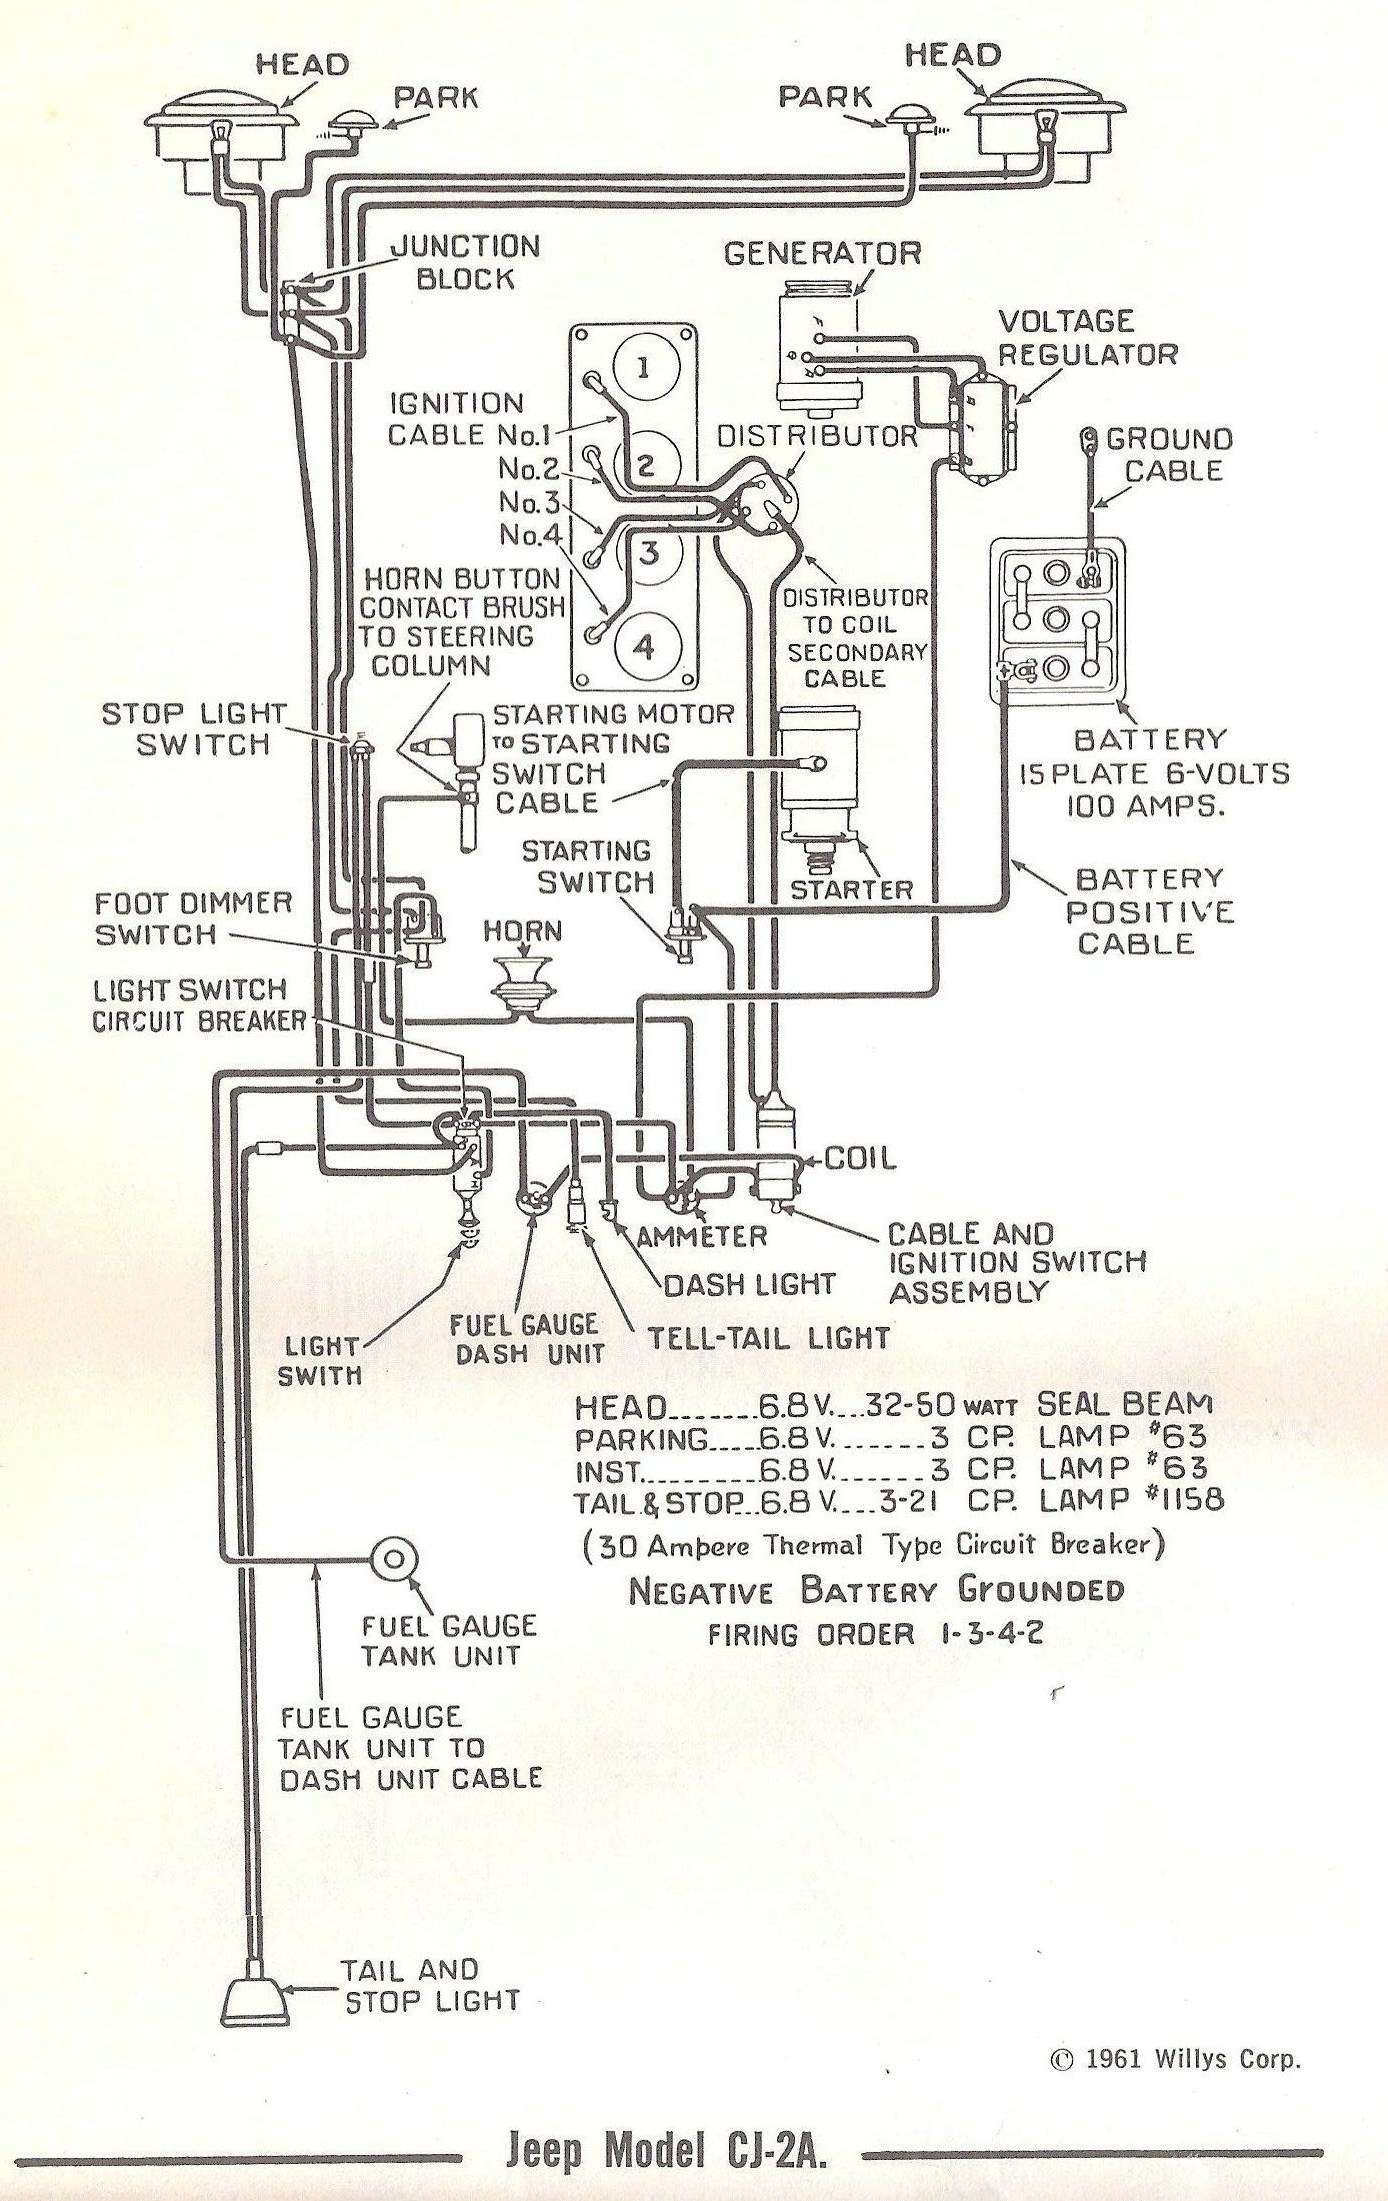 Willys Jeepster Wiring Diagram Chevy 250 Voltage Regulator Wire Diagram Ct90 Ab12 Jeanjaures37 Fr